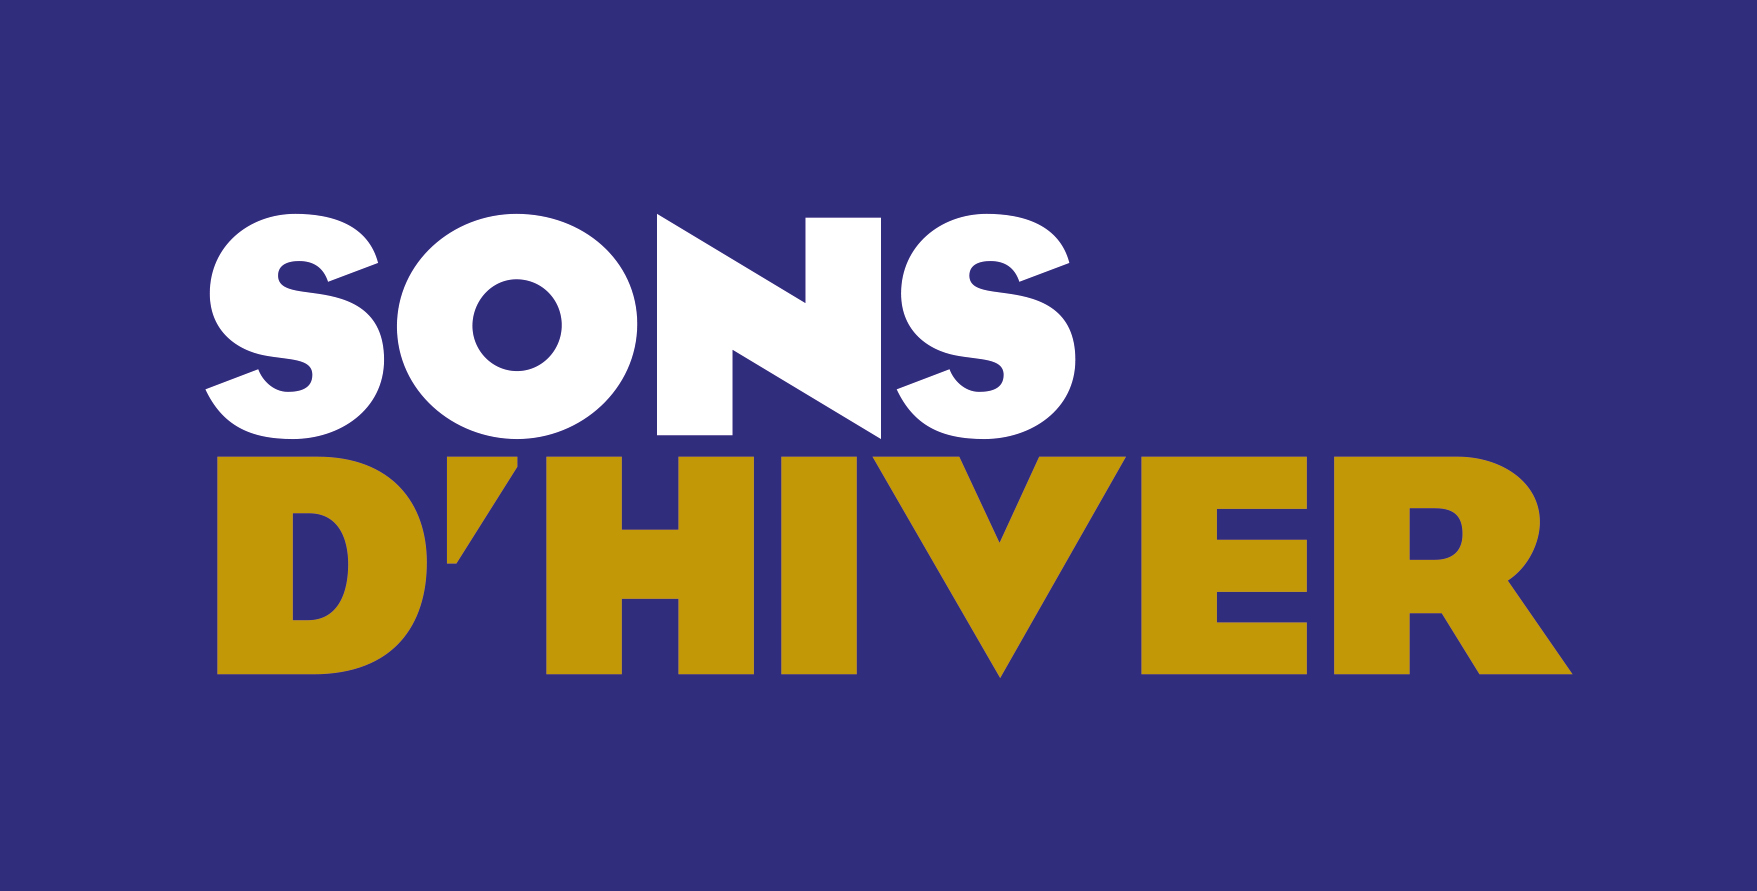 Logos-sons-d-hiver-Vect-4